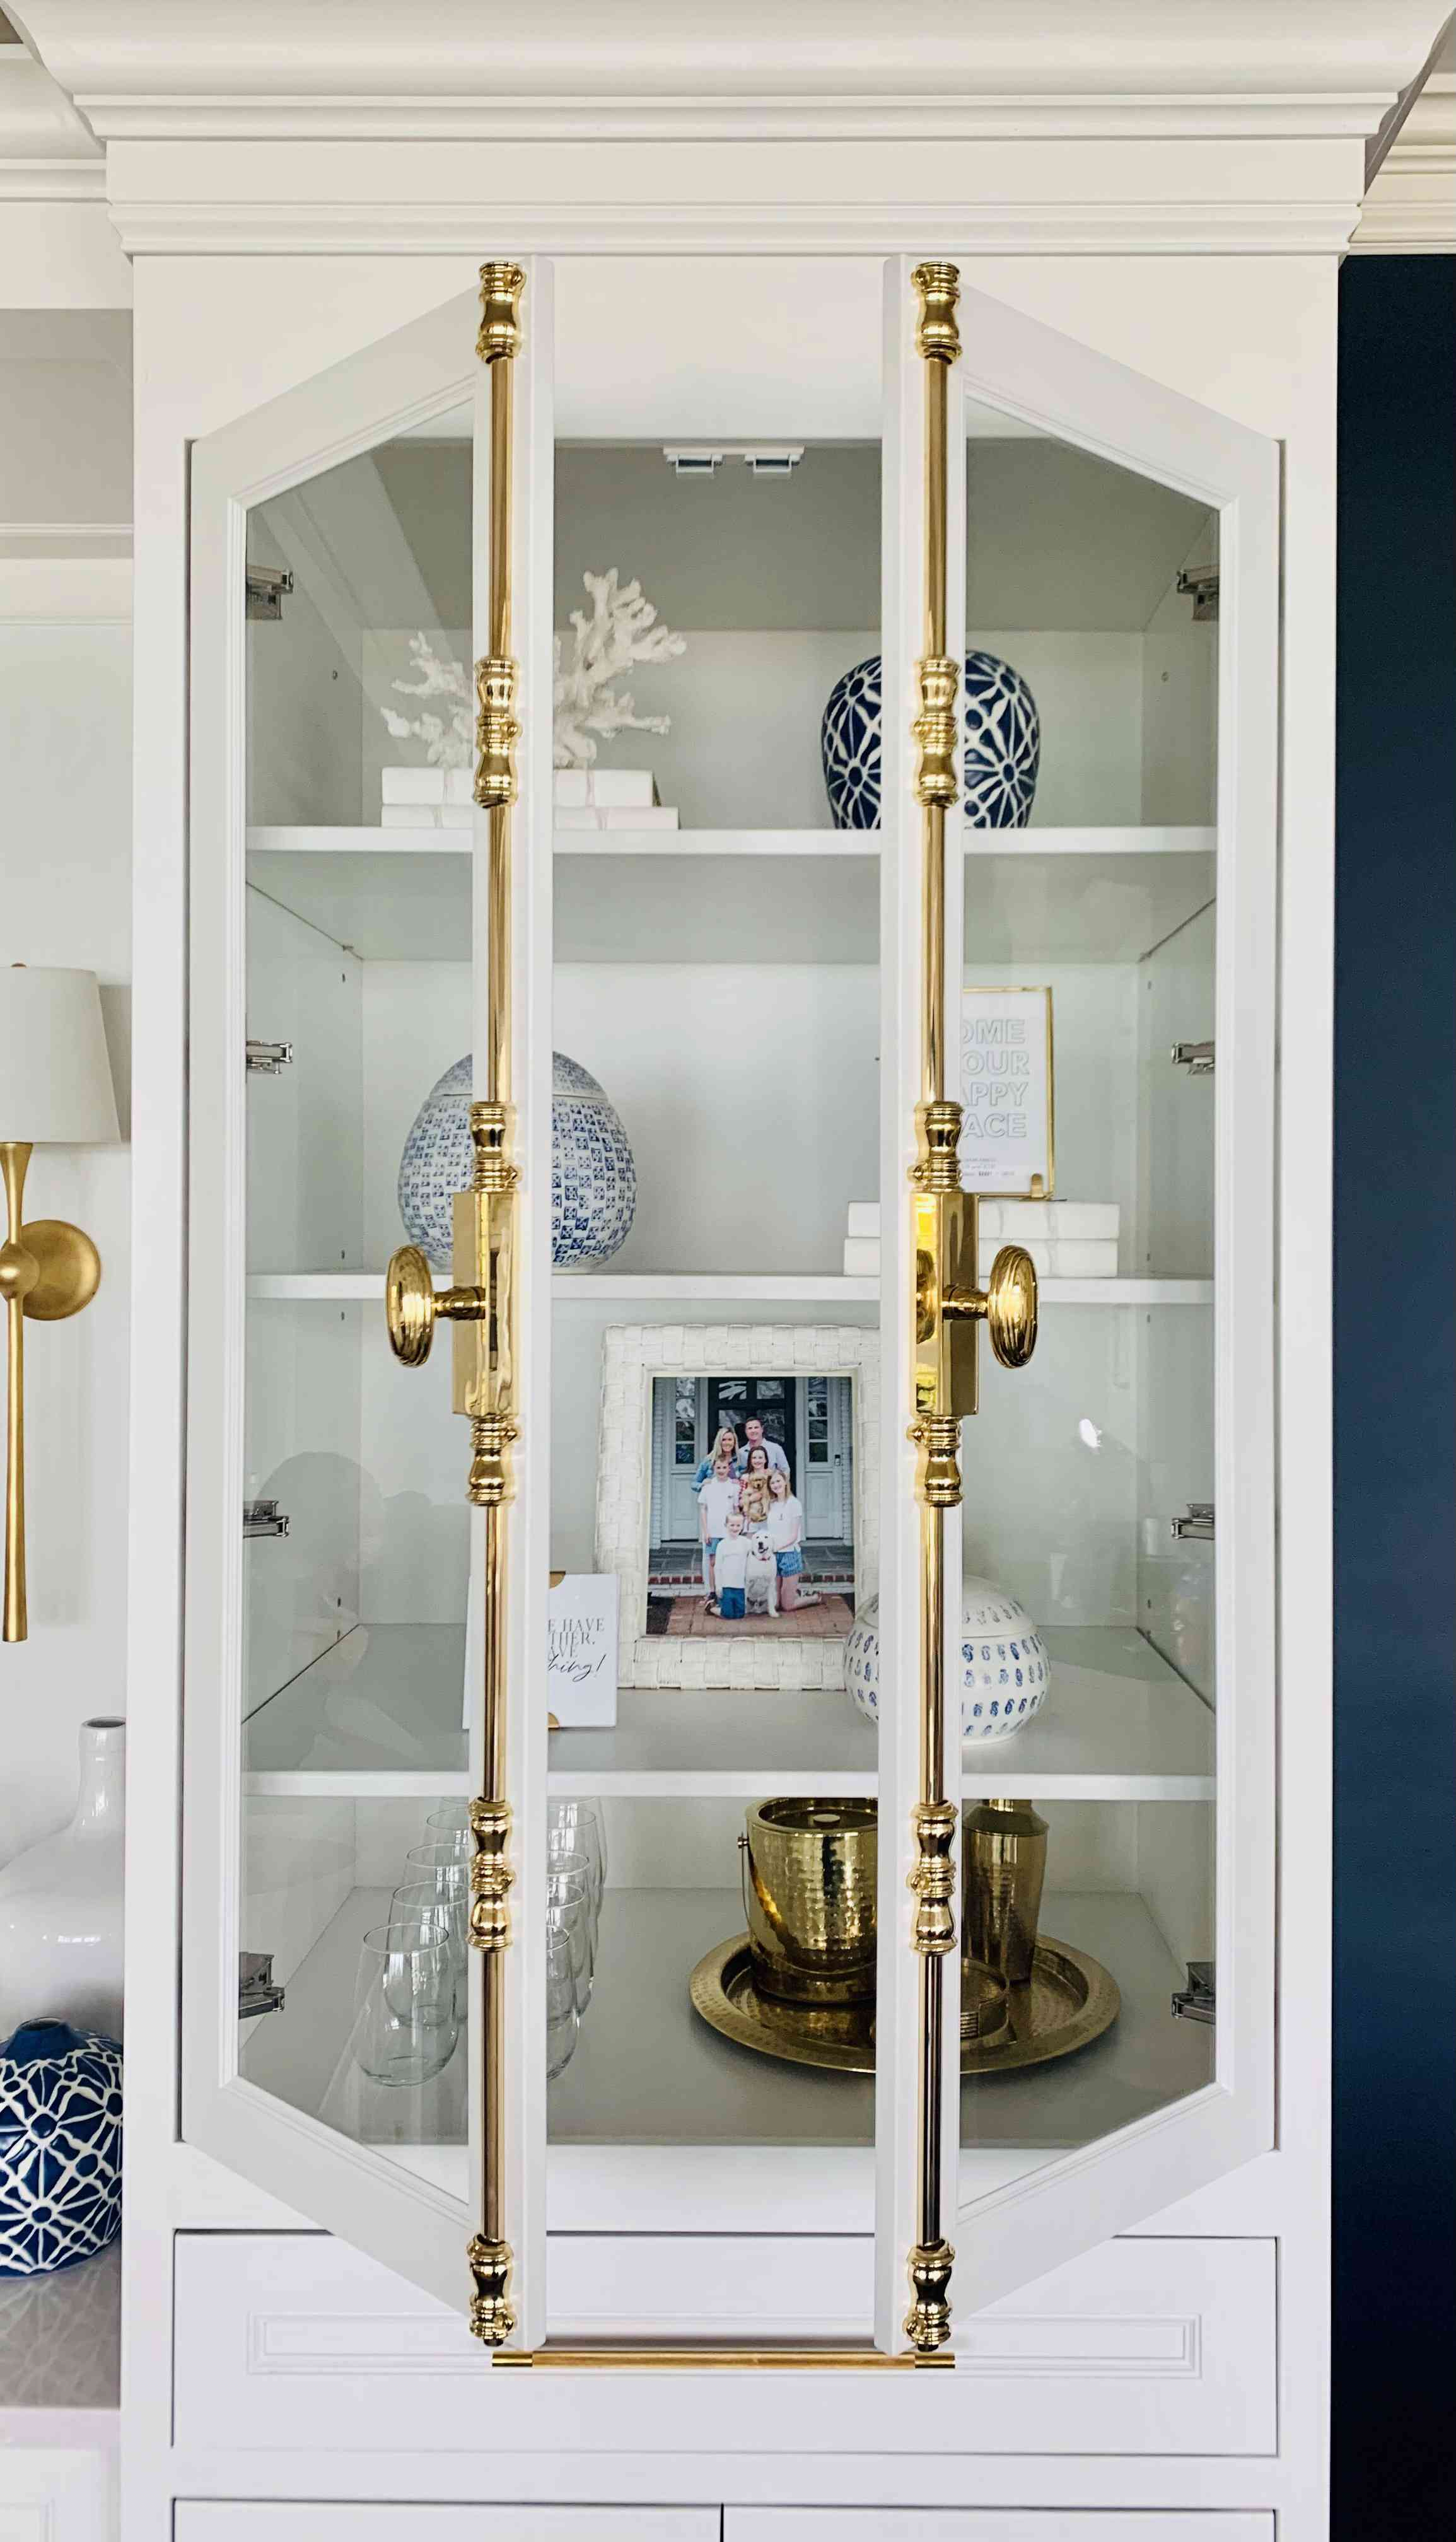 styled shelves feature white, blue, and gold elements